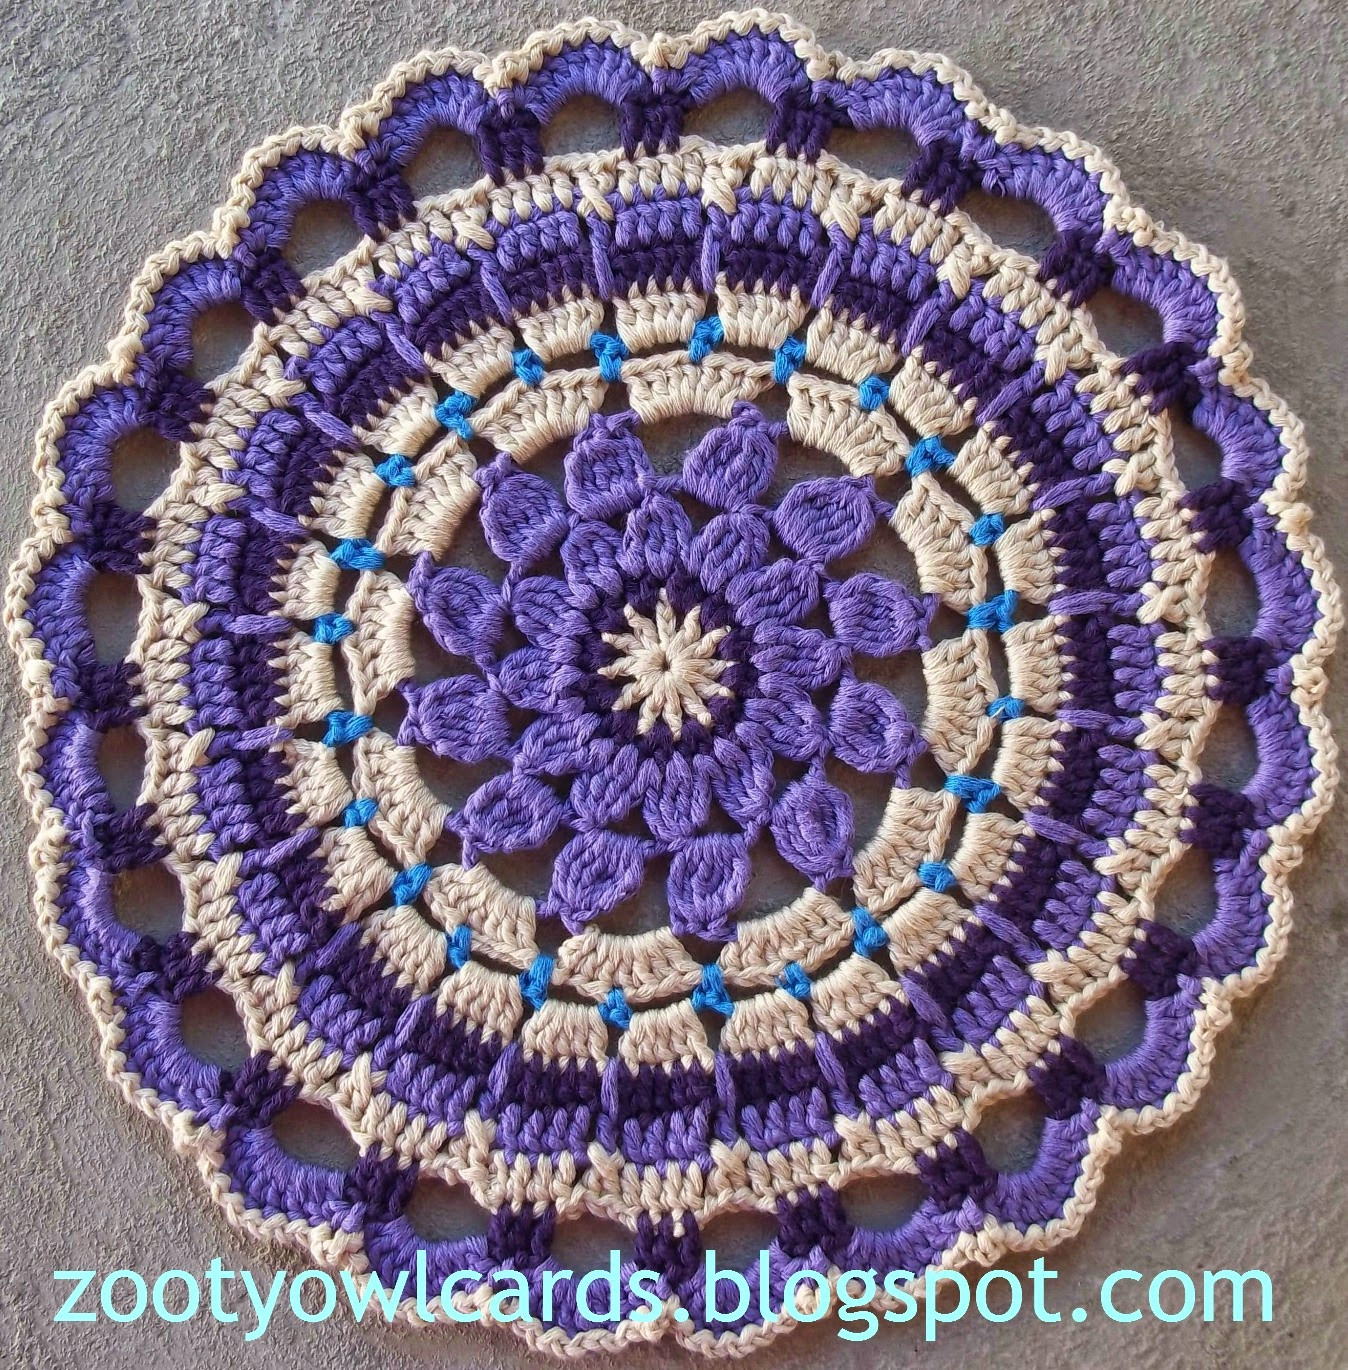 Crochet Mandalas Lovely Zooty Owl S Crafty Blog Dahlia Mandala Pattern Of Incredible 41 Pics Crochet Mandalas